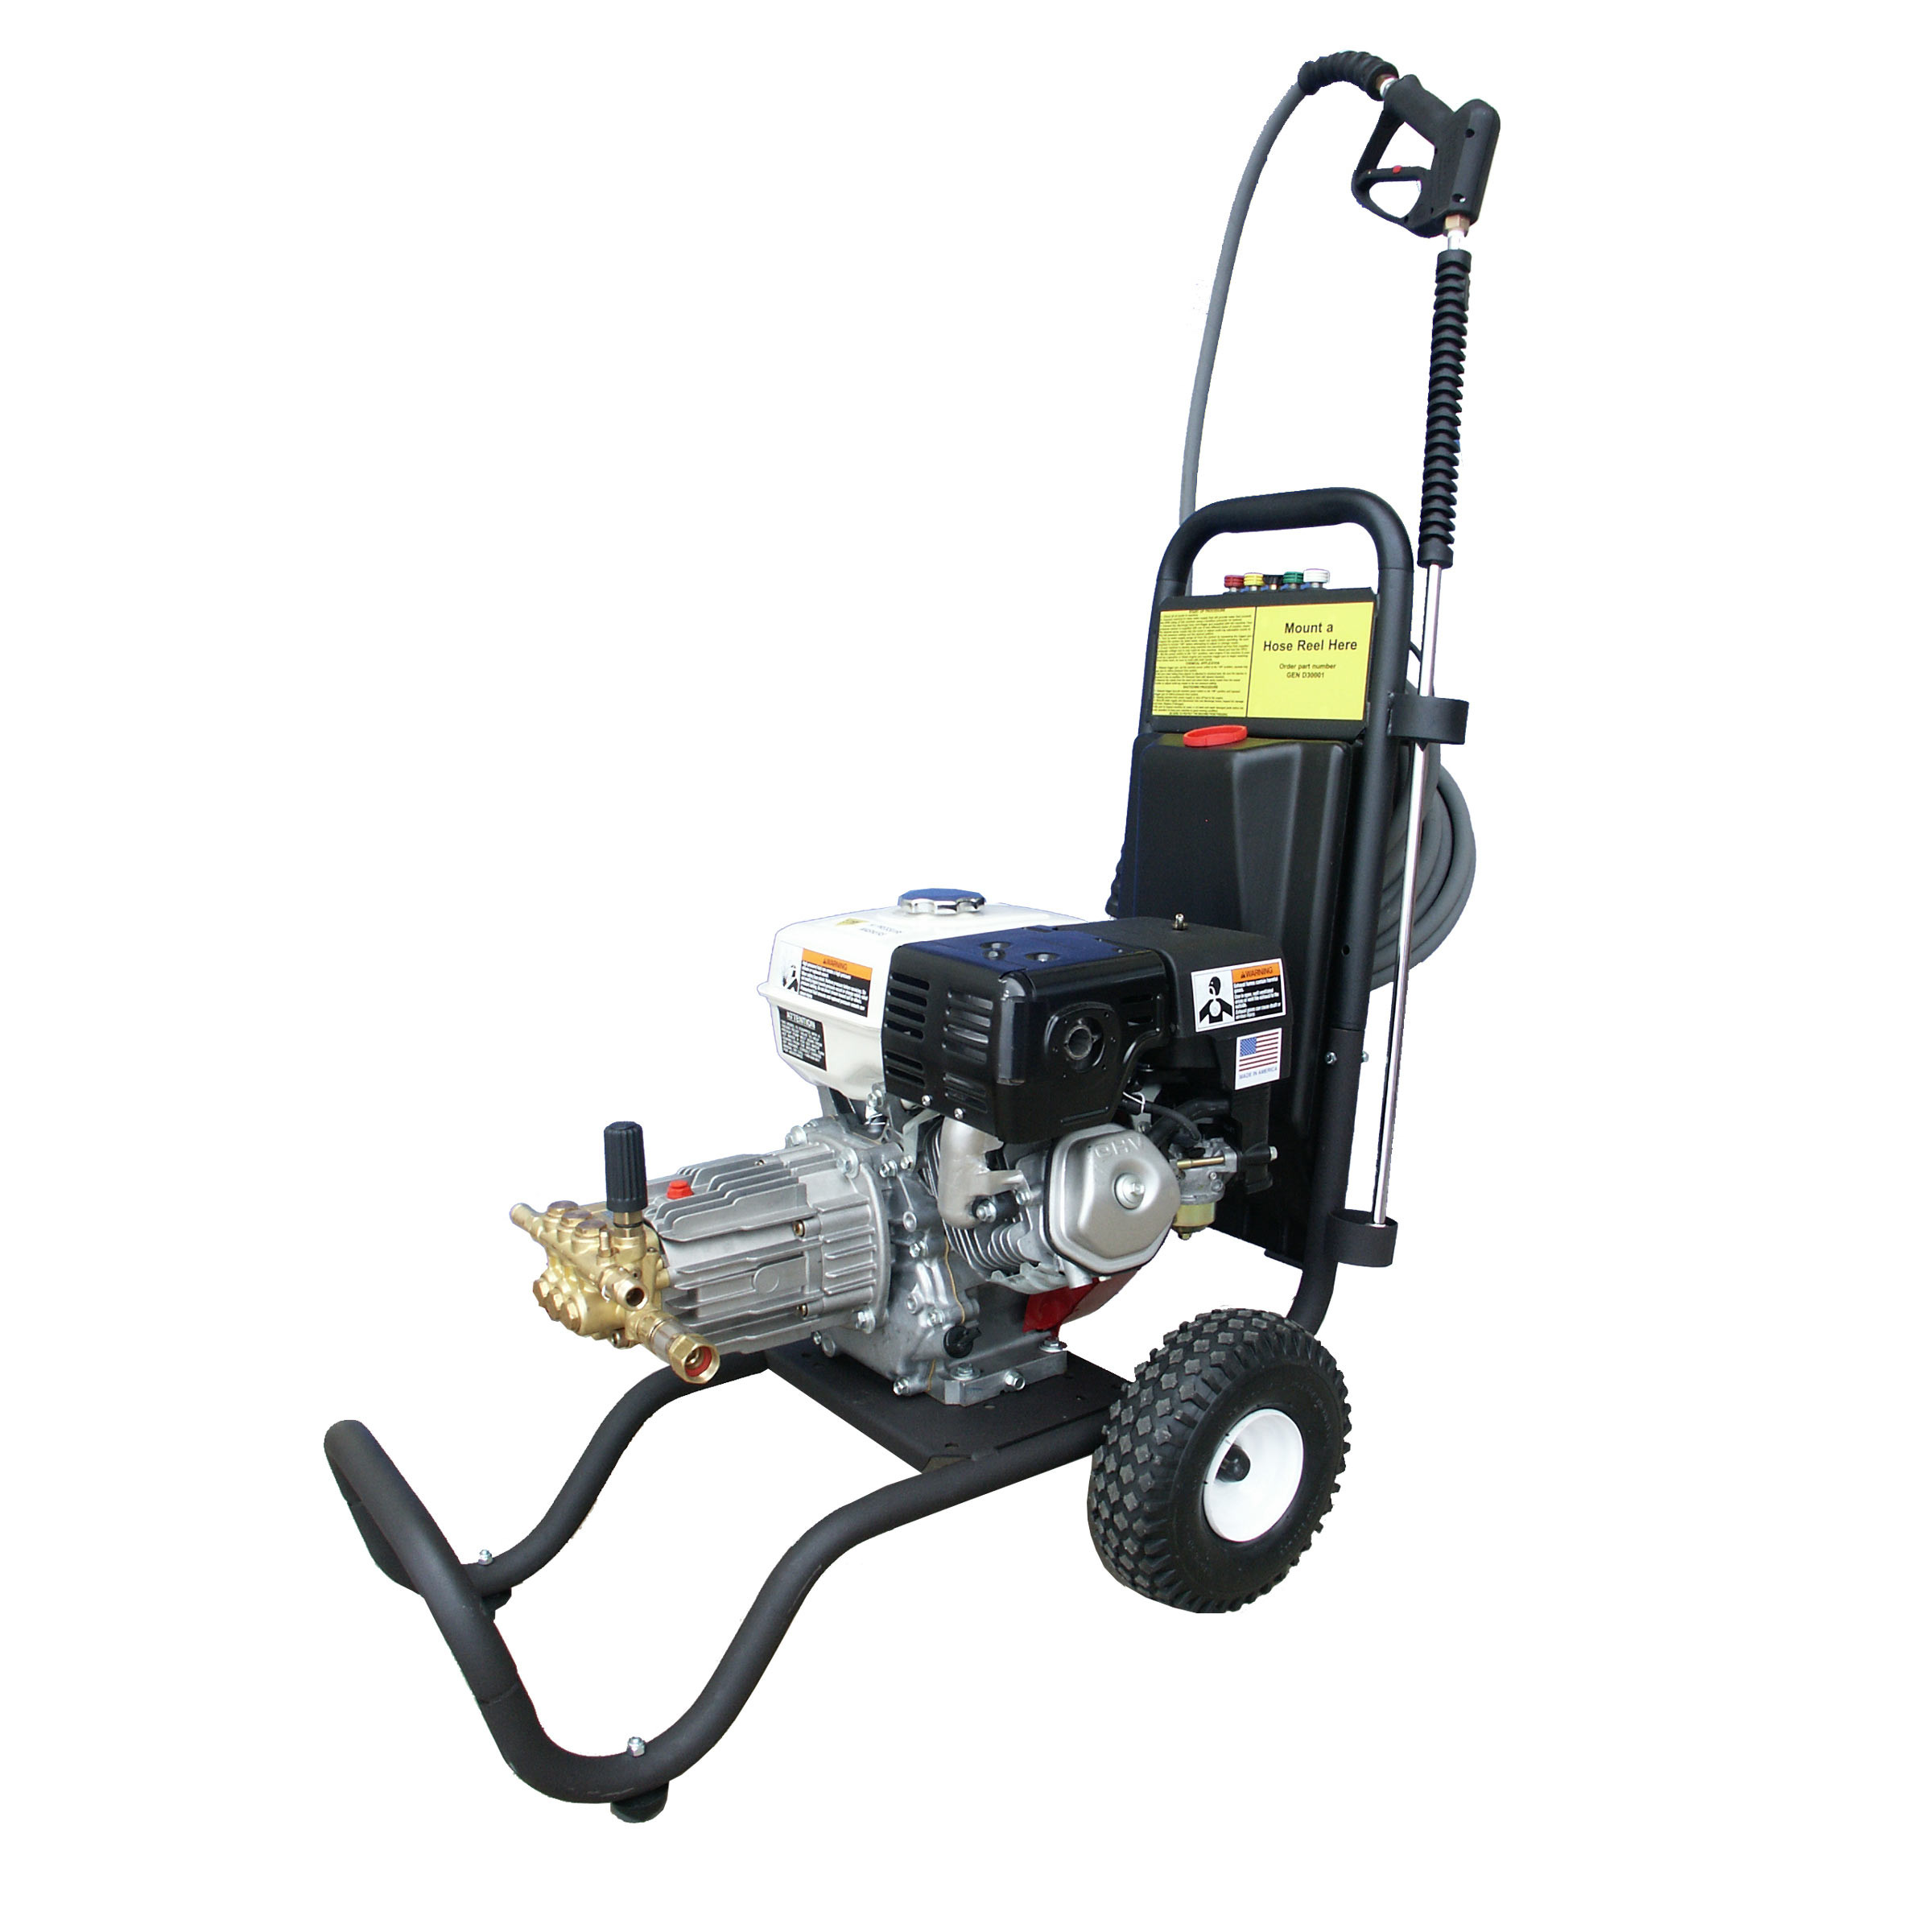 stark 3000 psi pressure washer manual